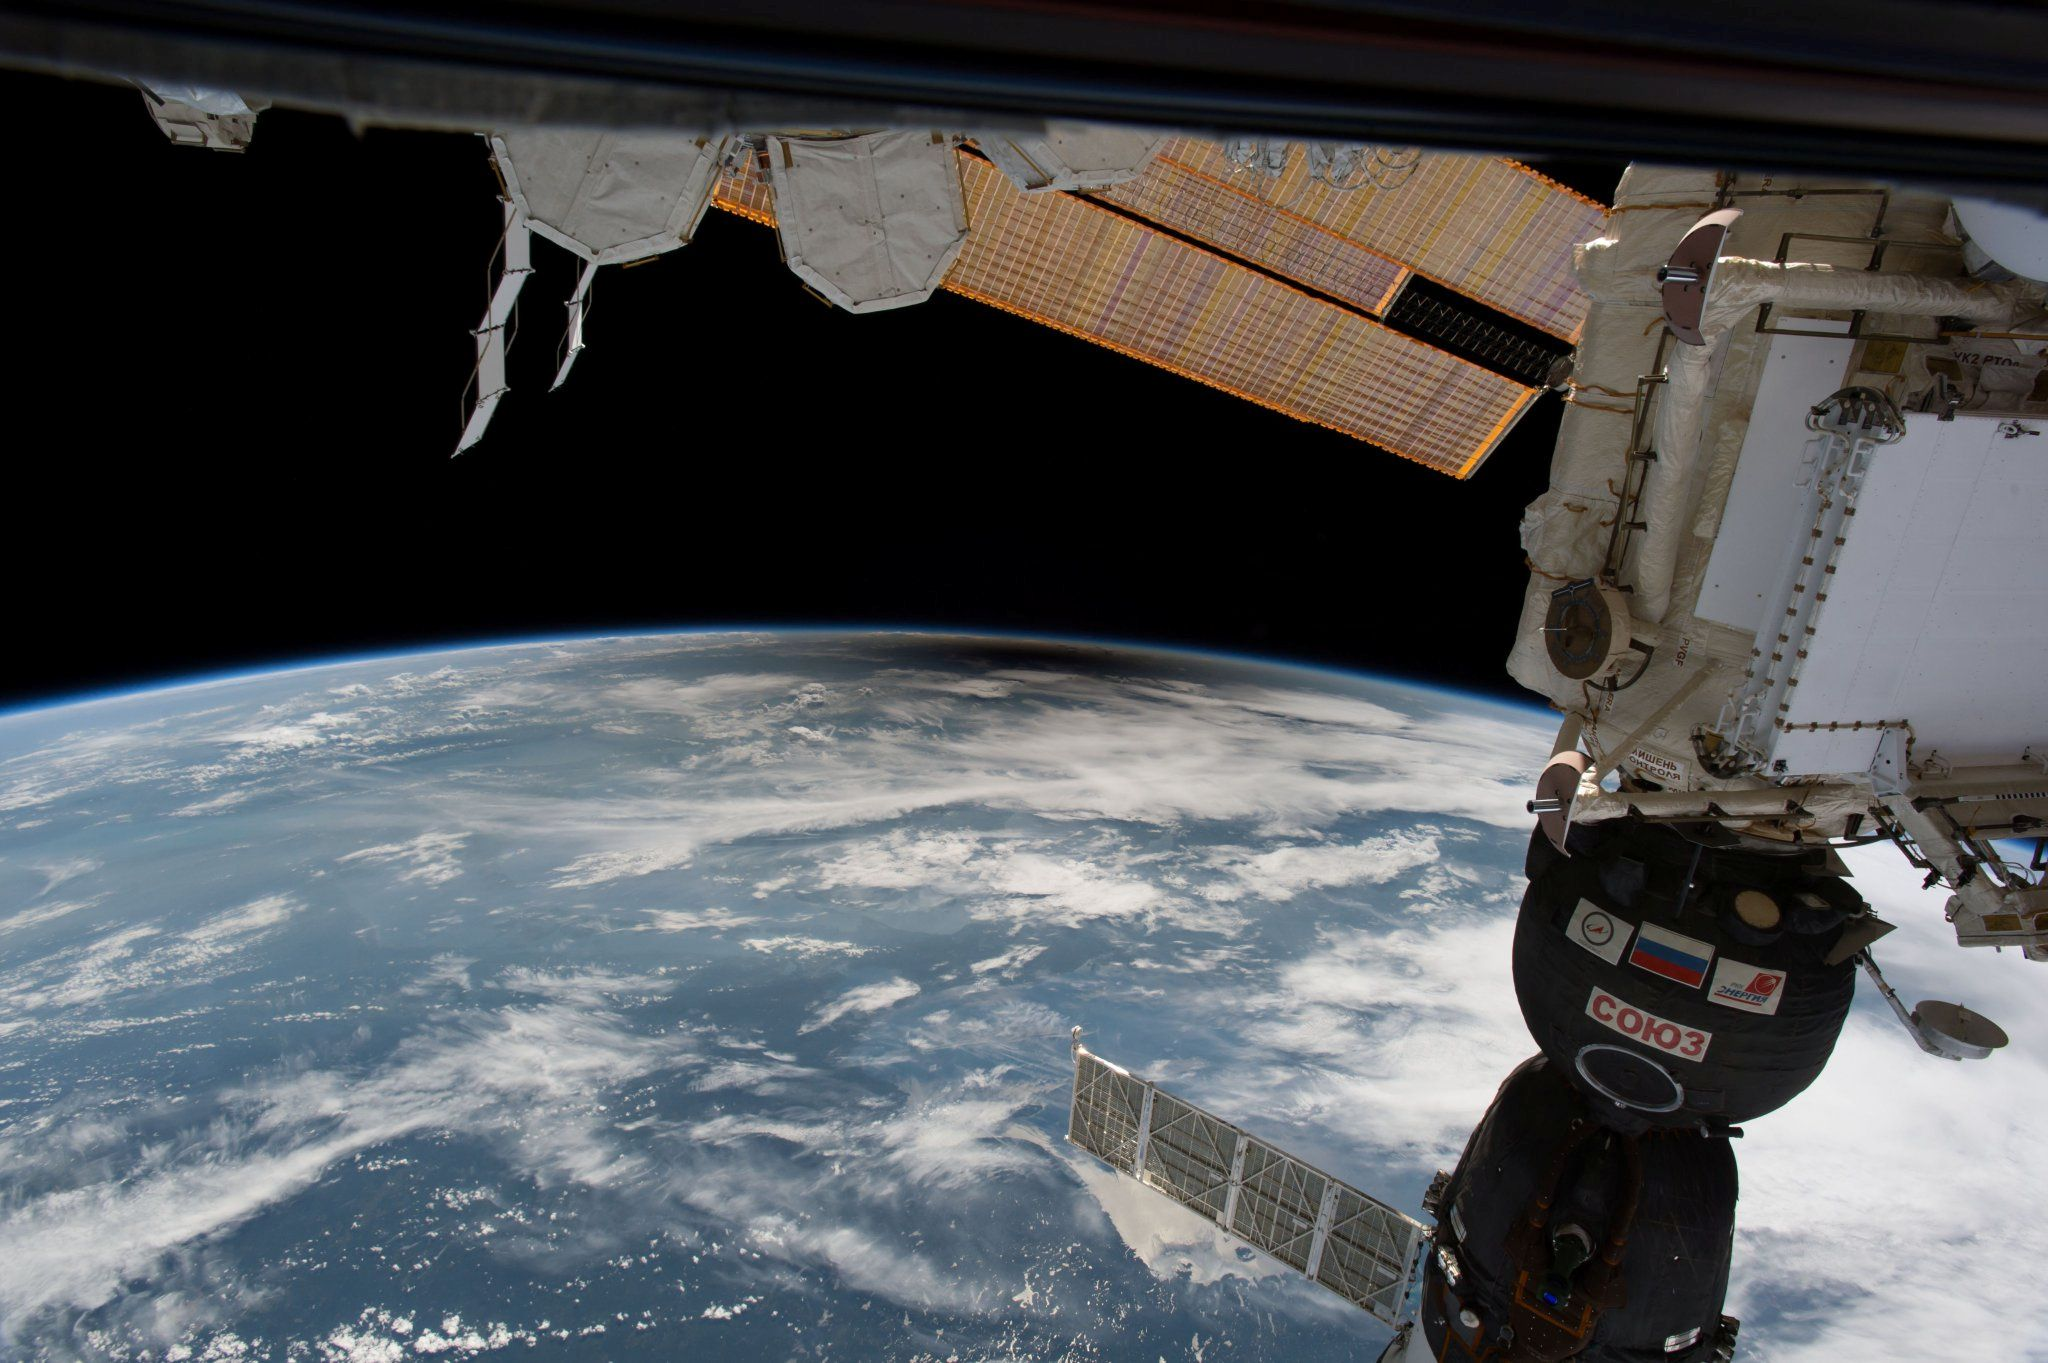 13_09_International_Space_Station_Earth_View